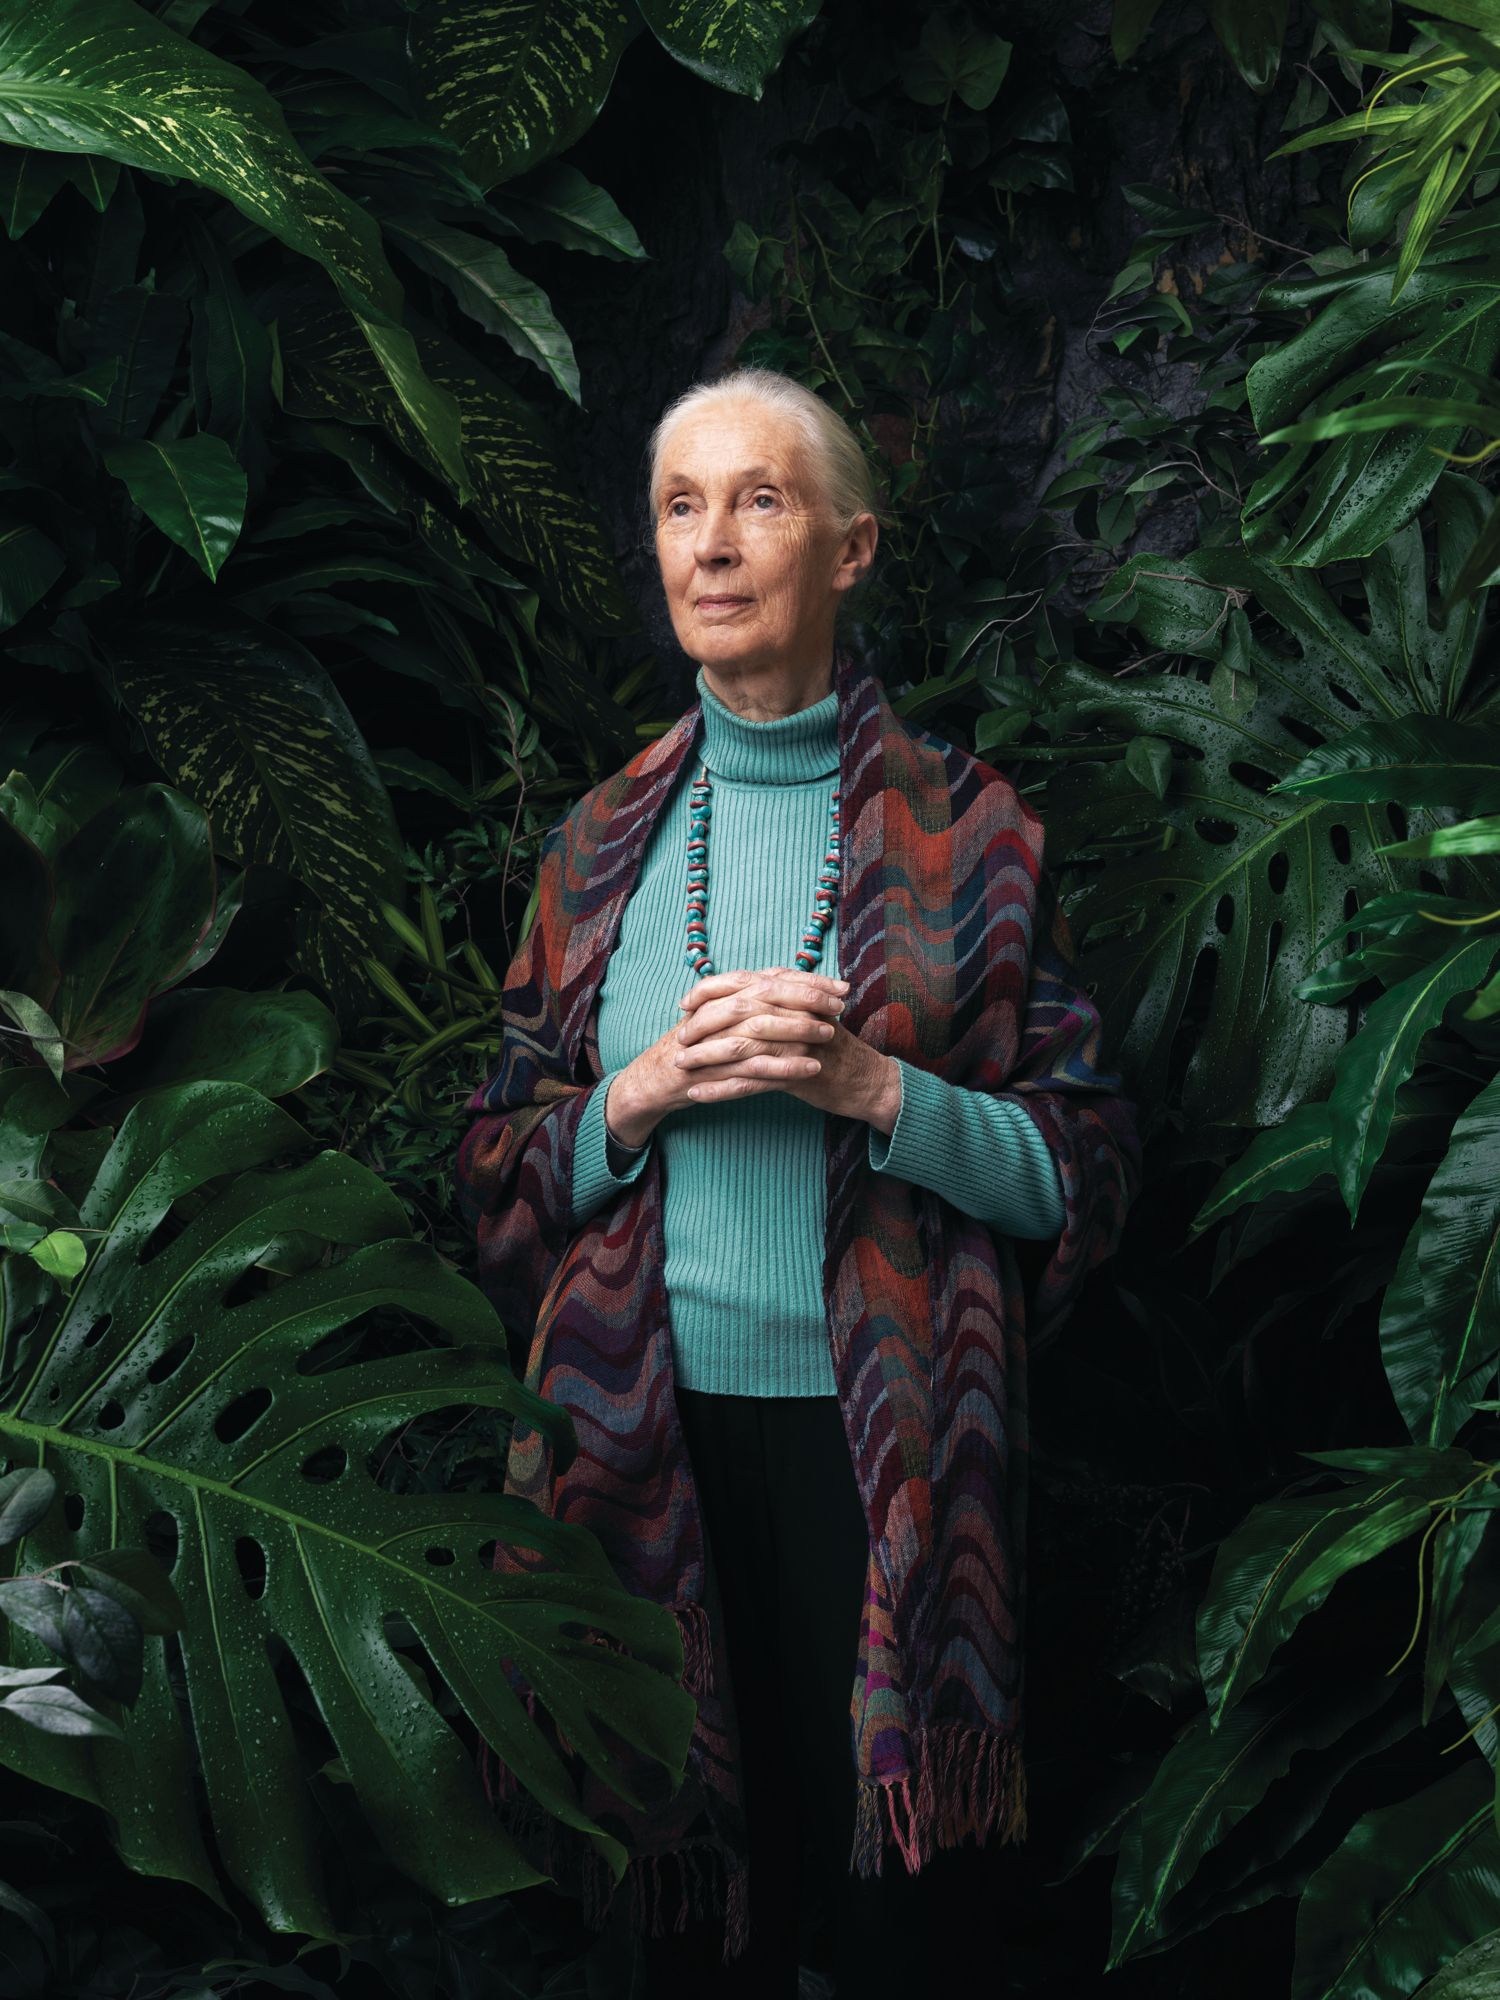 Jane Goodall on Hope, Her New Book and Why Humans And Chimpanzees Are Similar